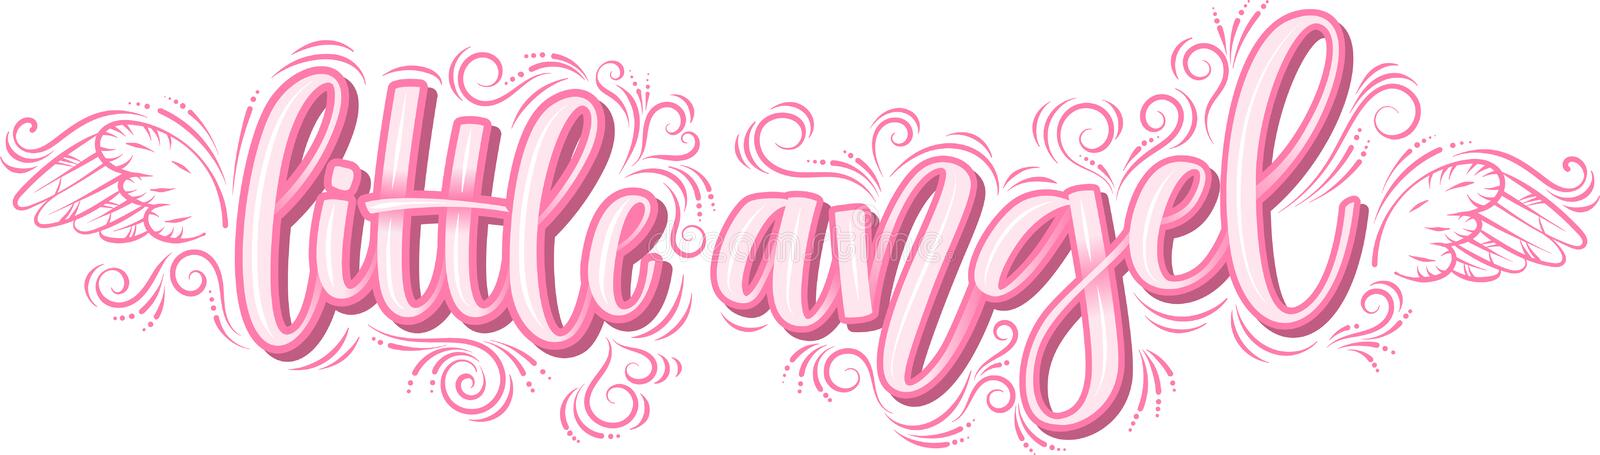 Little Angel lettering in pink inscription isolated on white background vector illustration